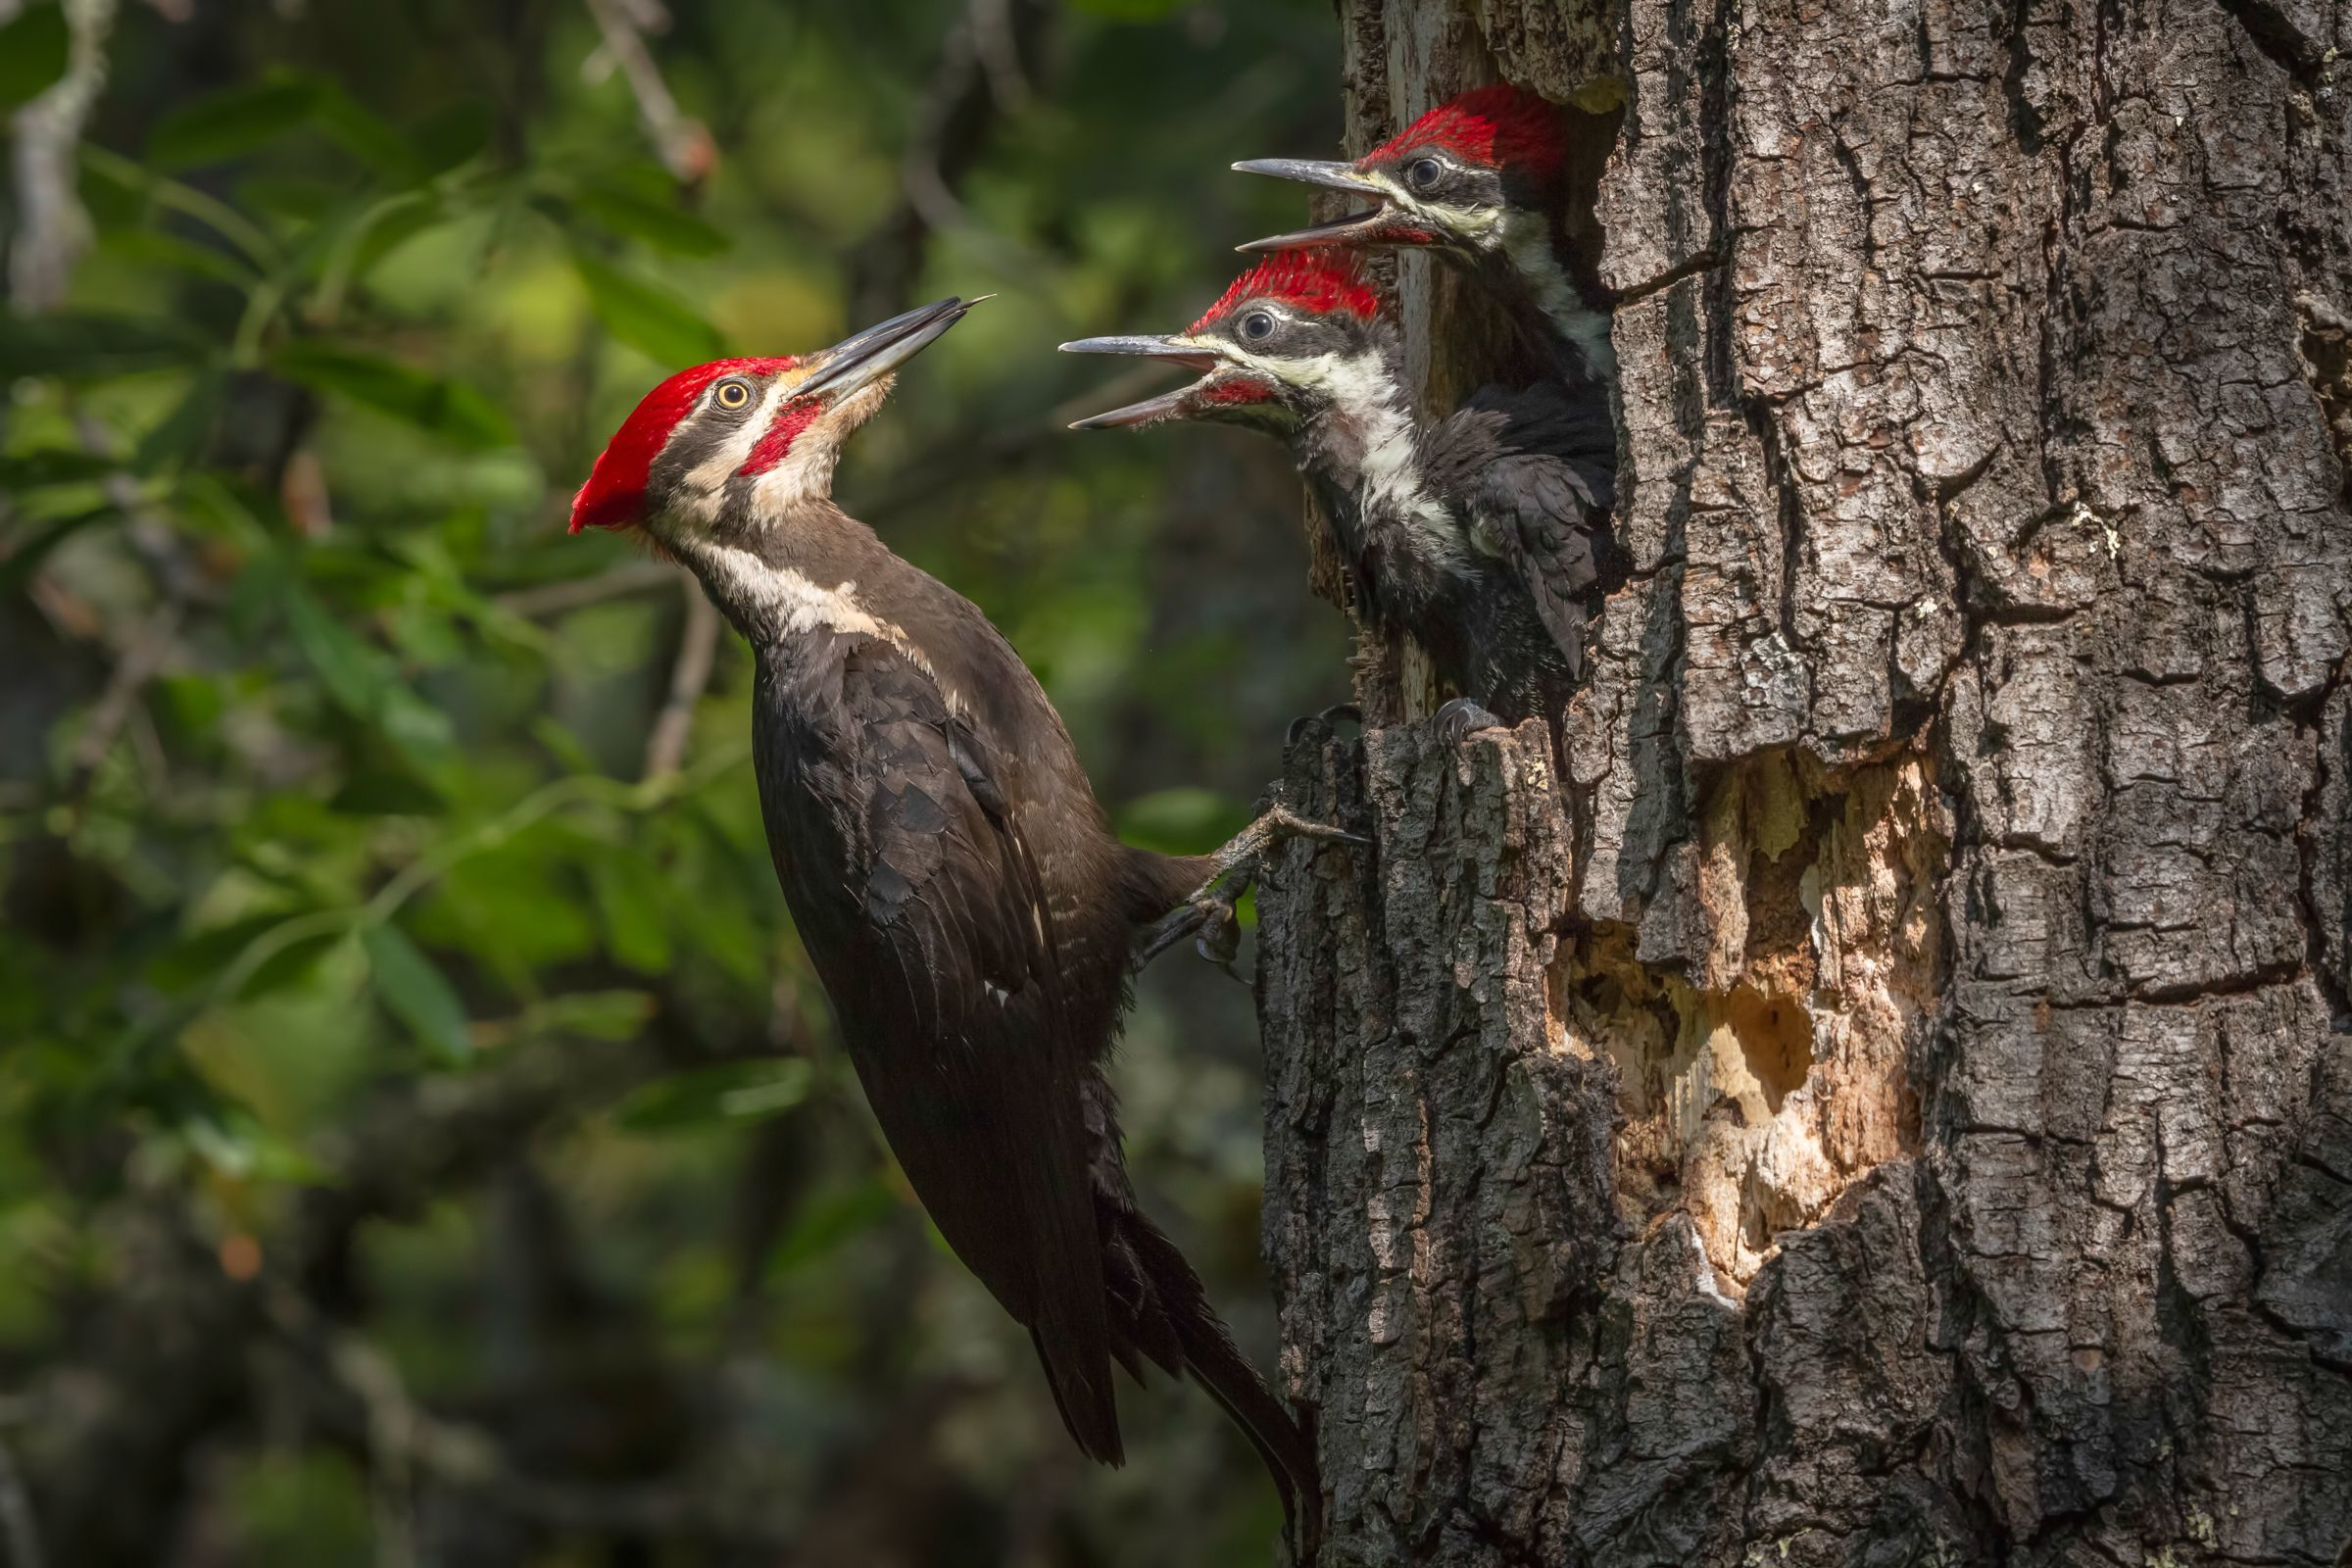 Upcoming Webinars: Birds of Georgia's Urban Forests (April 22) and What Lies Beneath: Soils, Roots and Urban Trees (May 20)